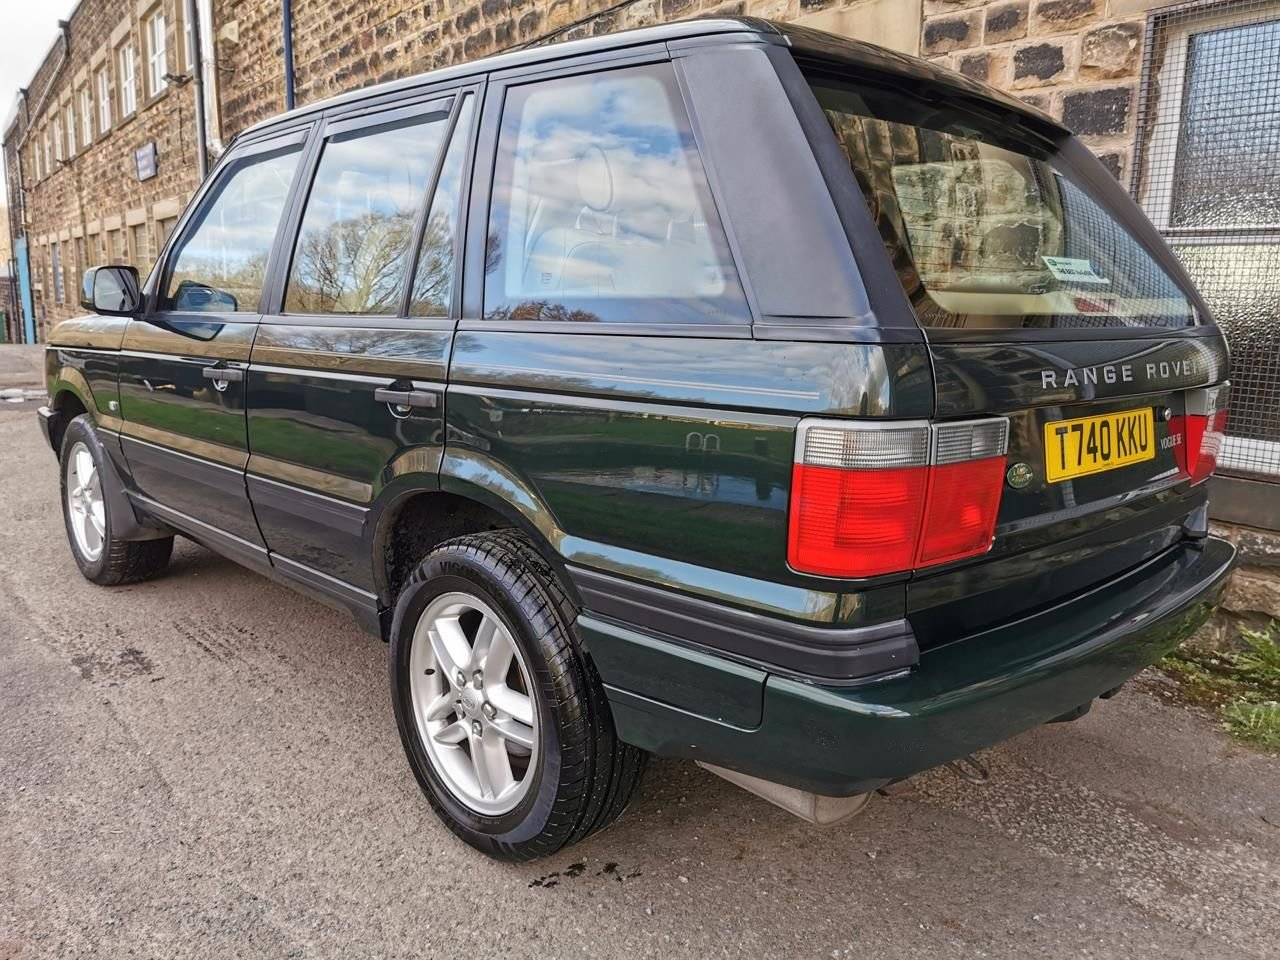 1999 Range Rover Vogue SE 1 of 30 cars, 1 Year Warranty For Sale (picture 6 of 6)